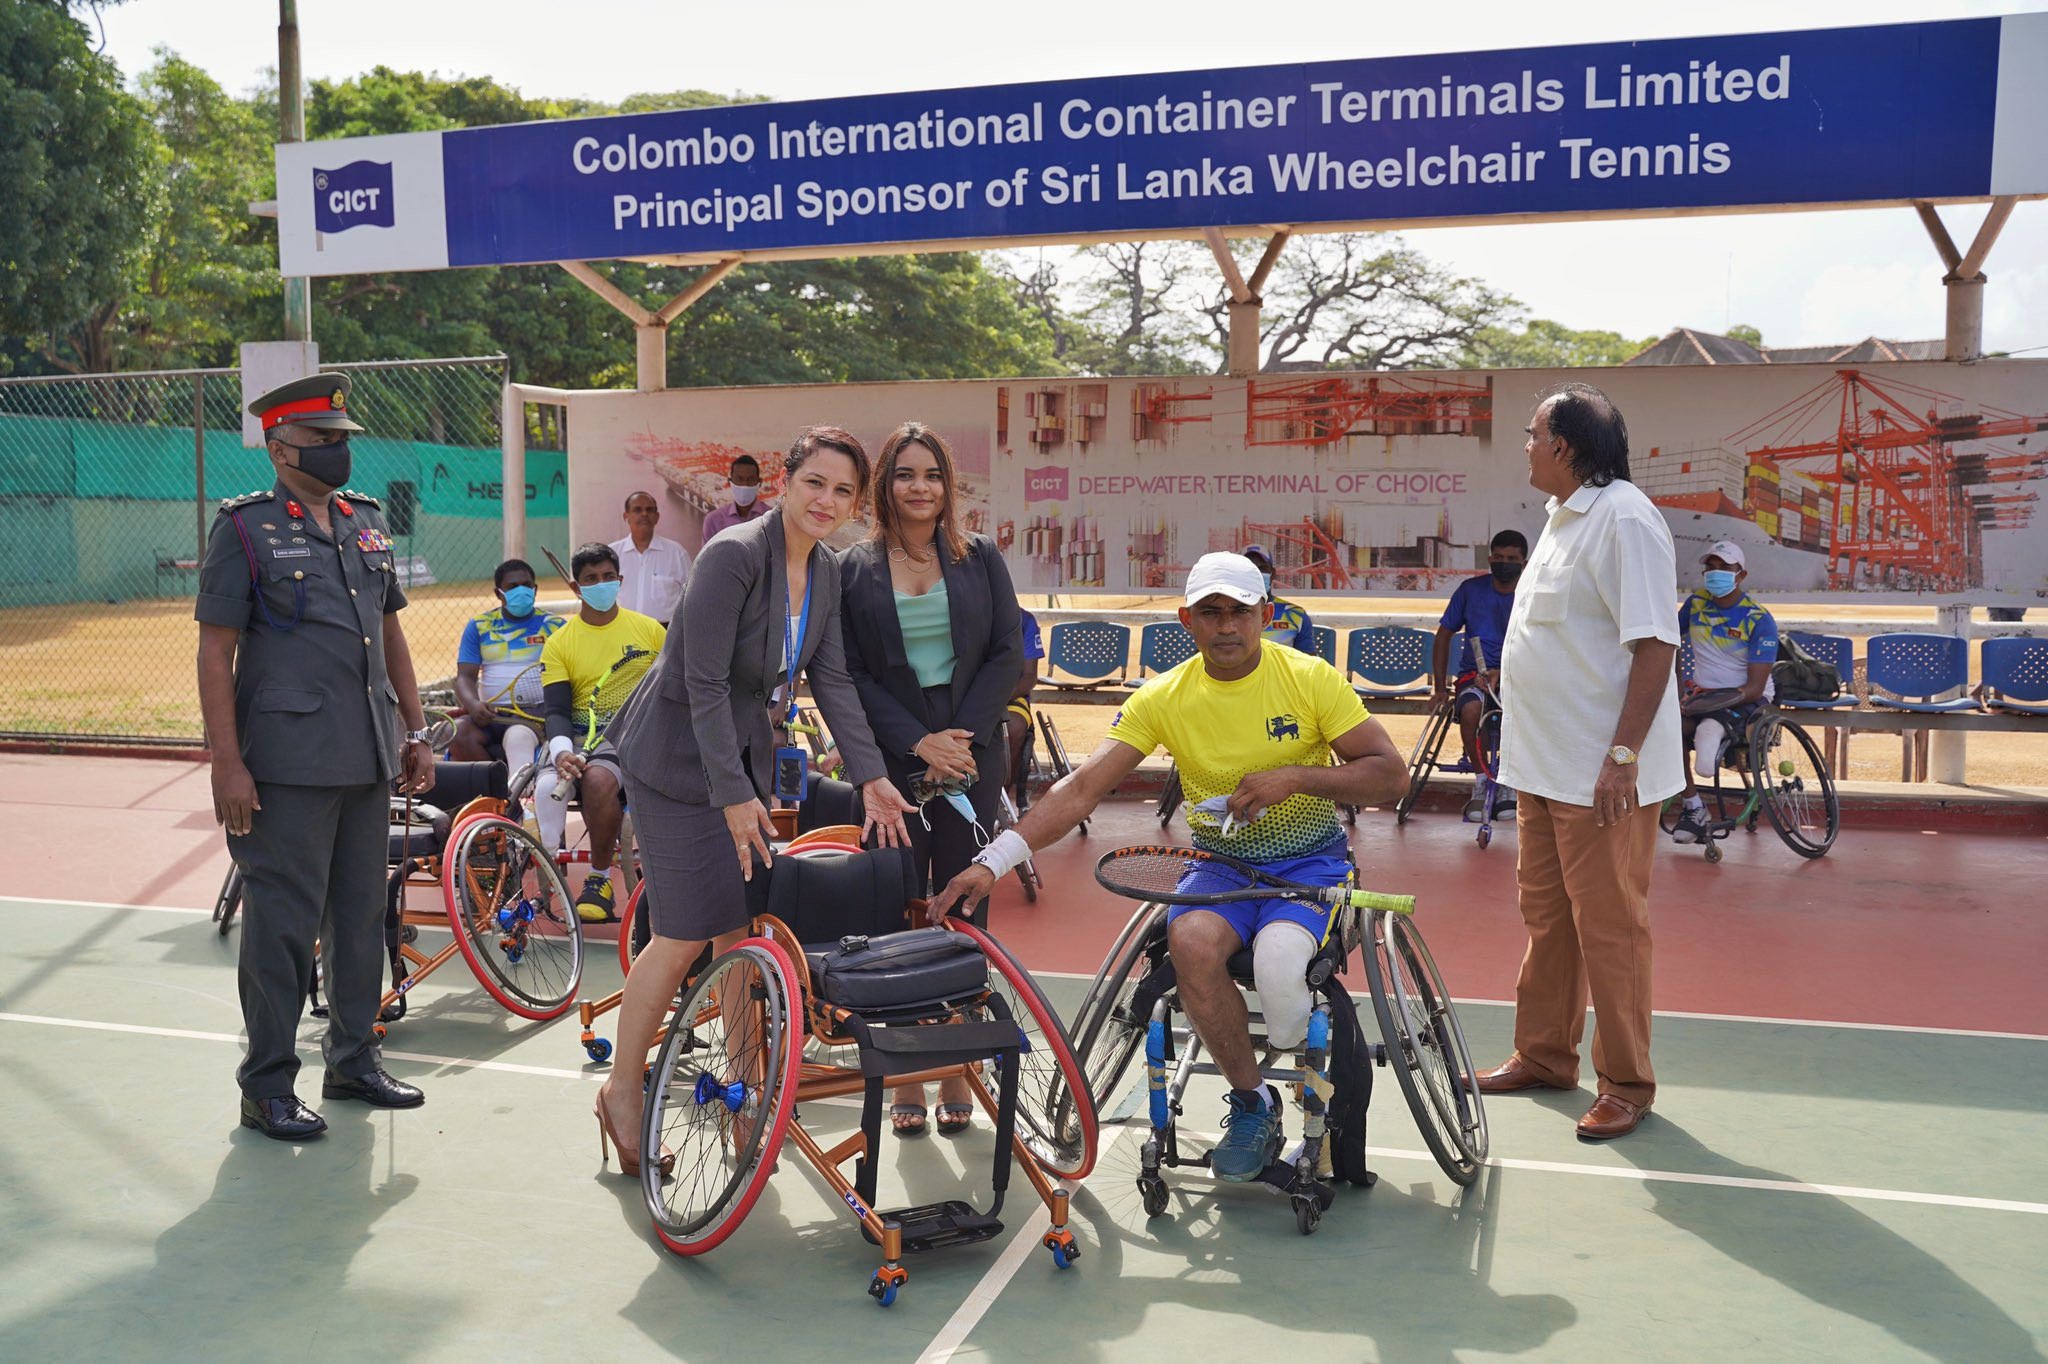 Shipping companies donate wheelchairs to Sri Lankan tennis players